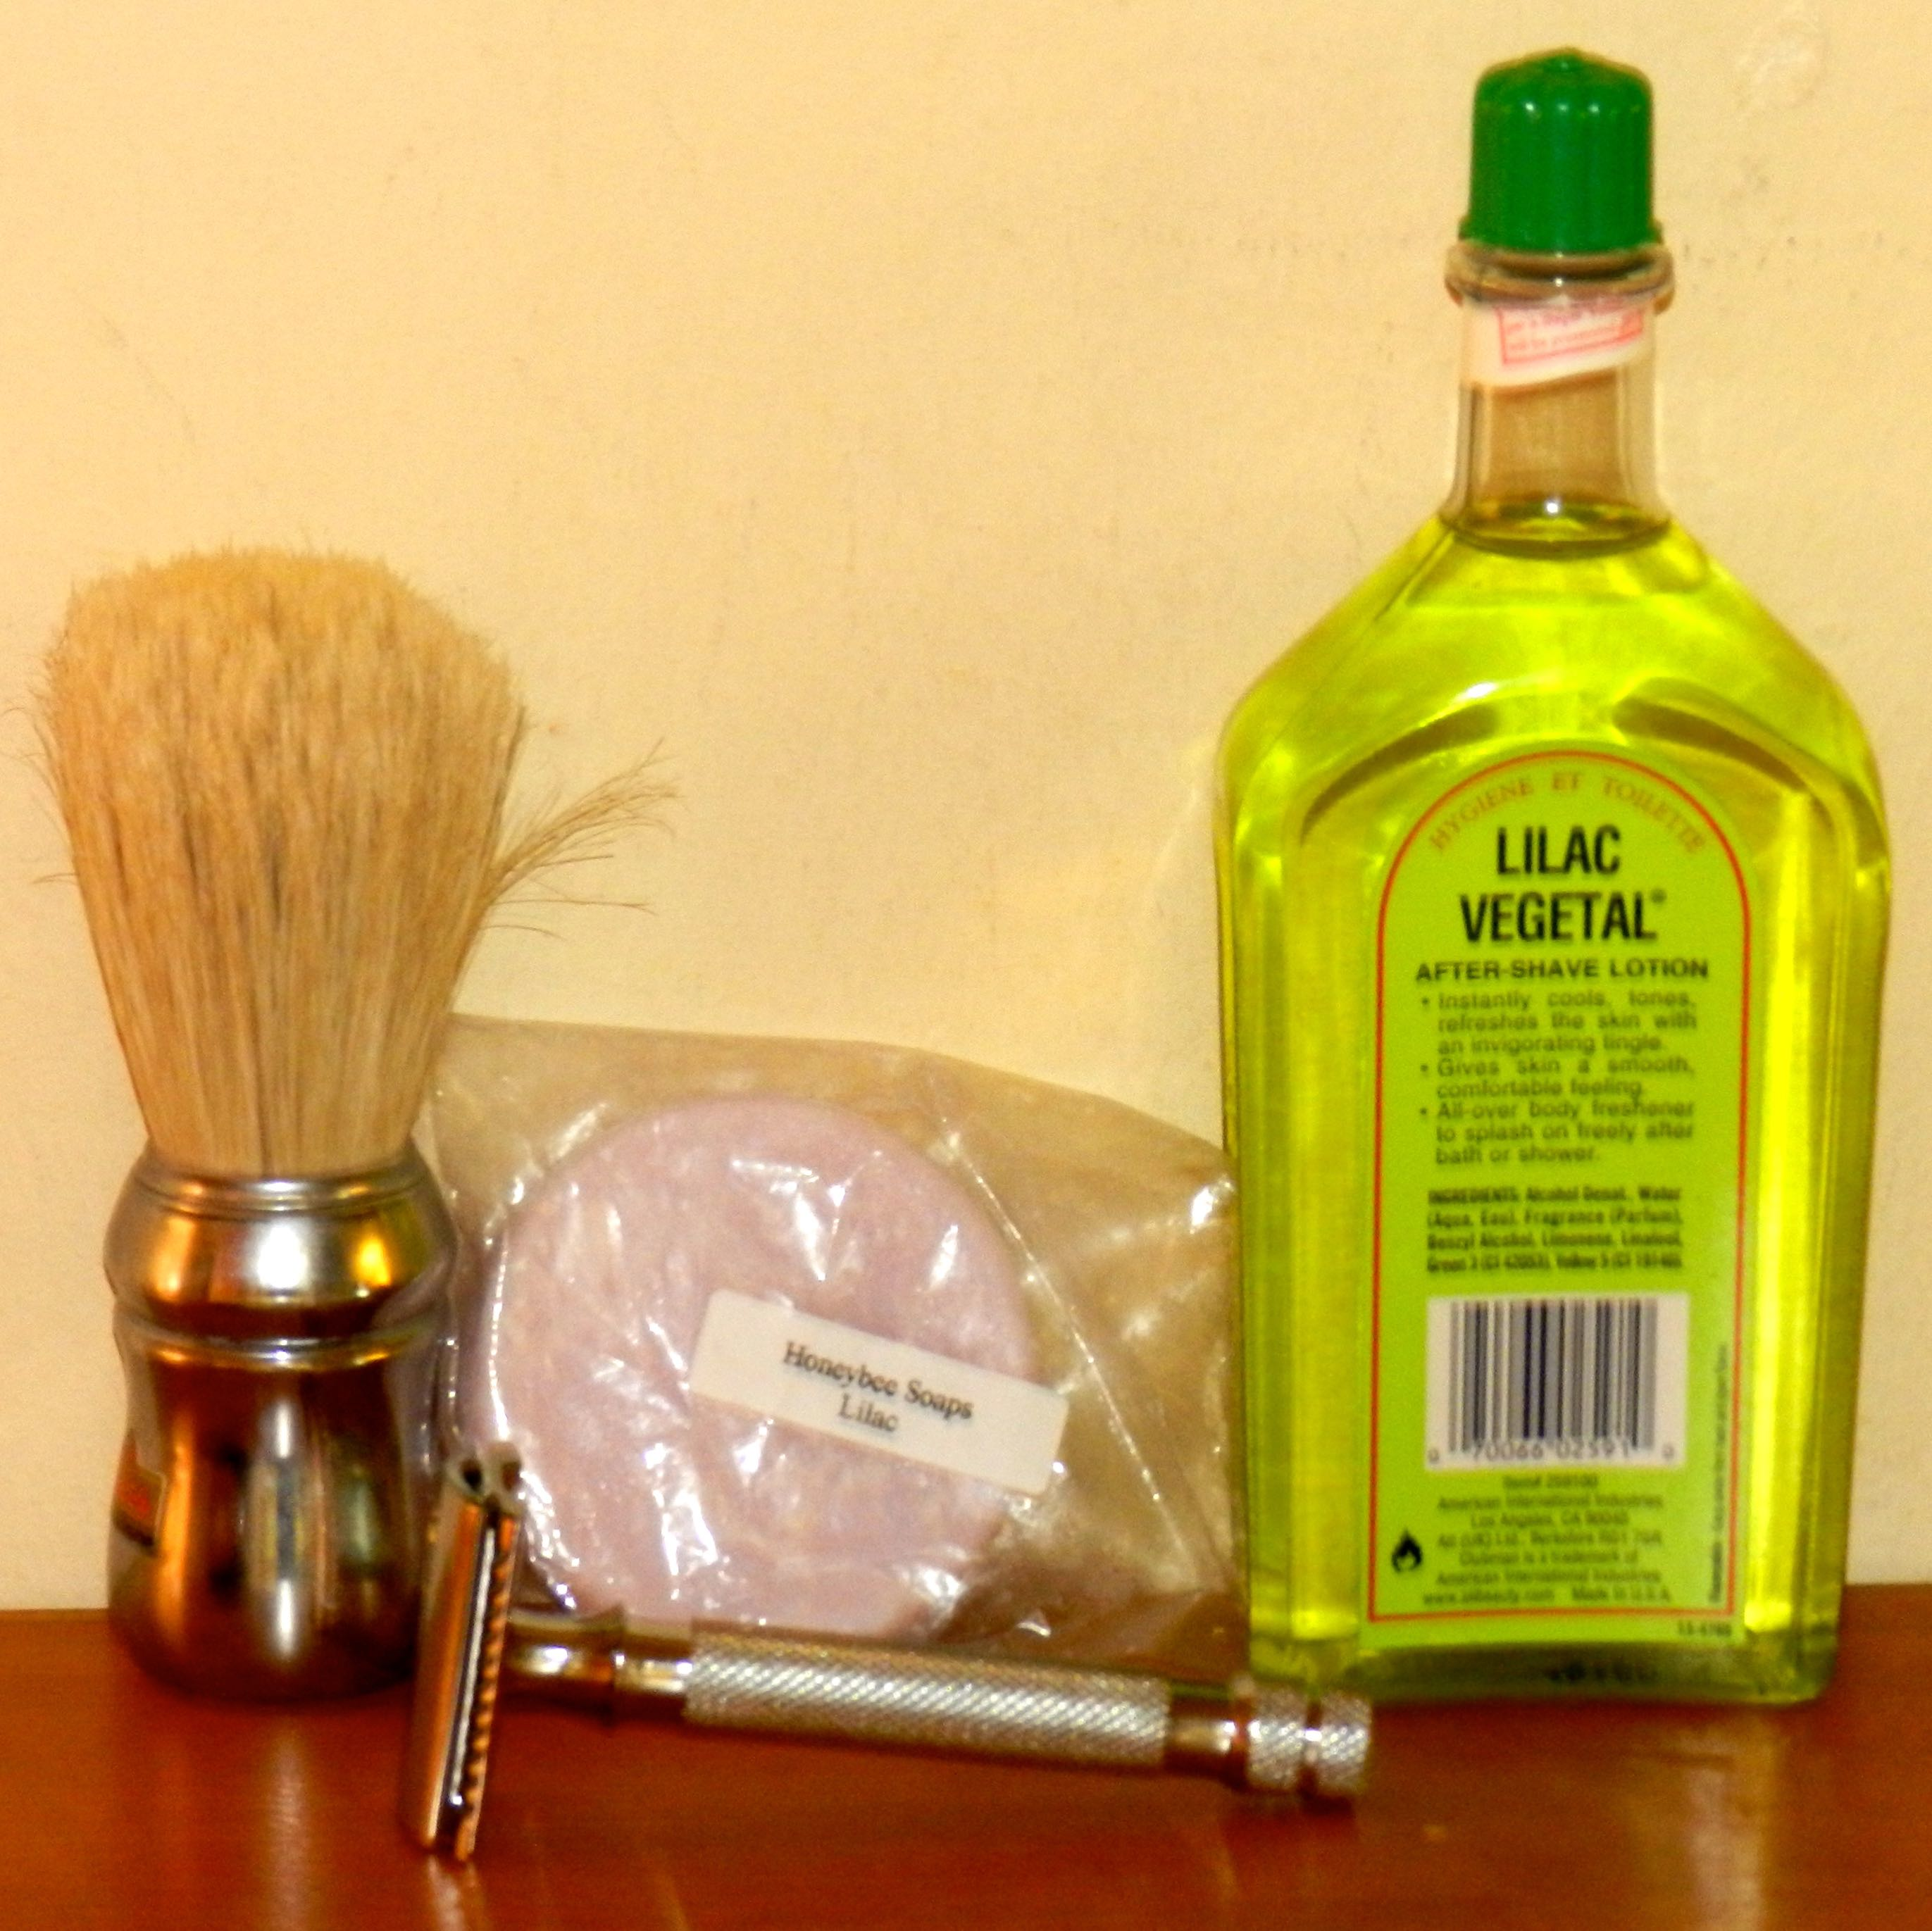 A weird result in the lather experiments and a new inexpensive razor